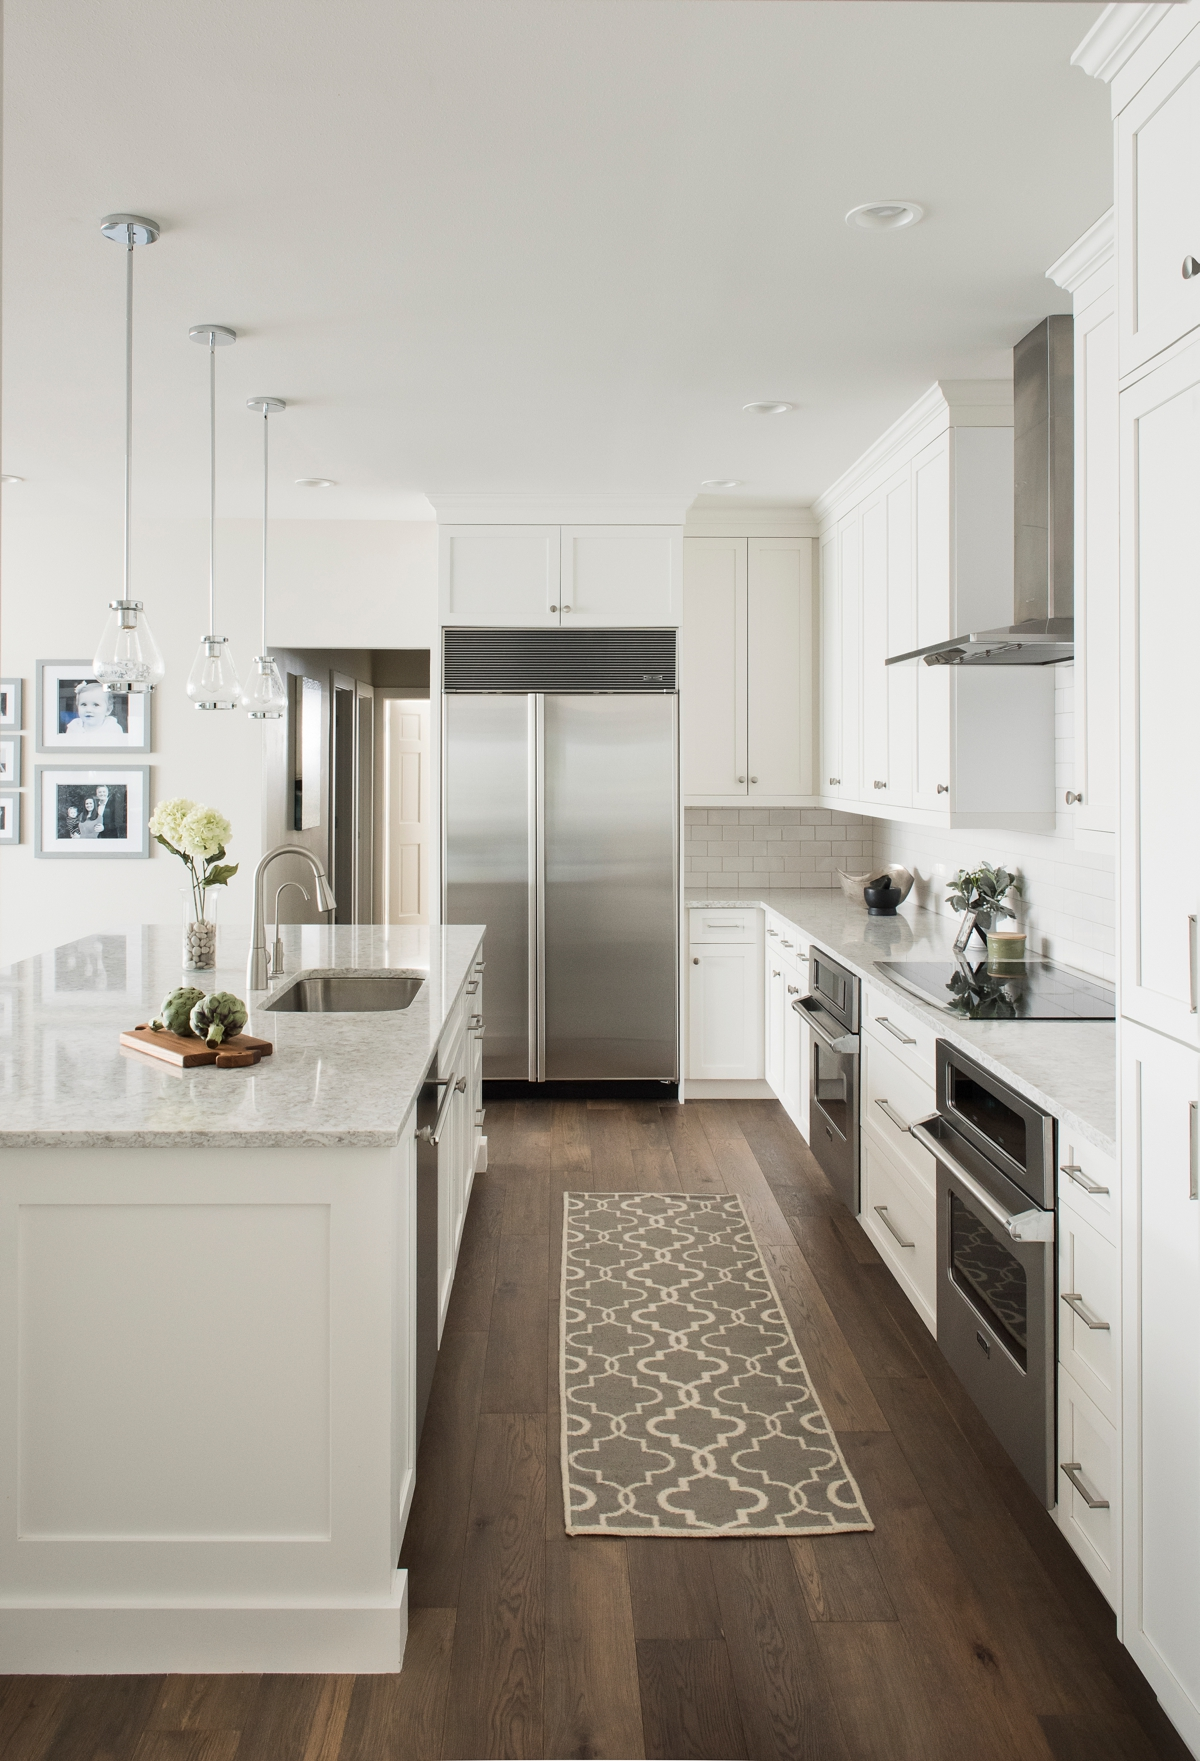 Mirror Lake white kitchen by Brianna Michelle Design